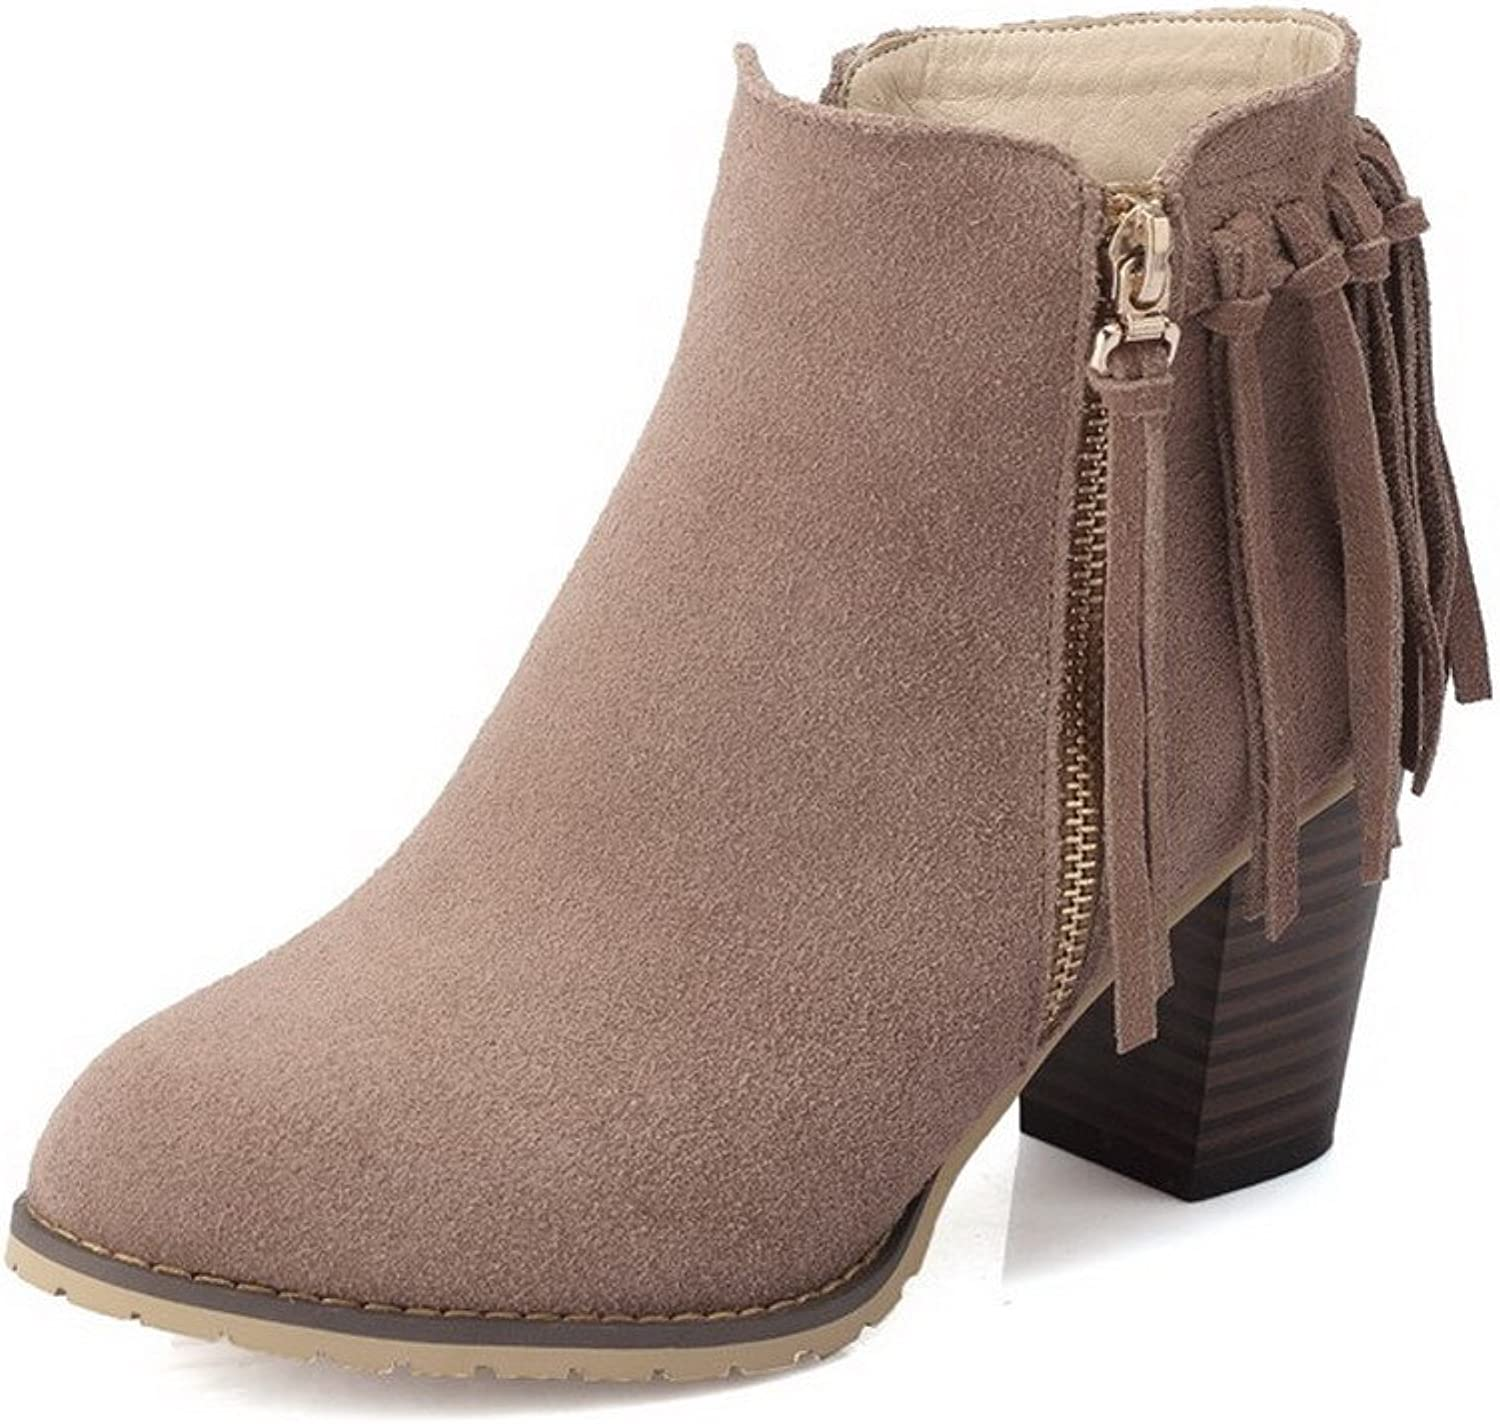 AllhqFashion Women's Cow Leather Frosted Kitten-Heels Boots with Tassels